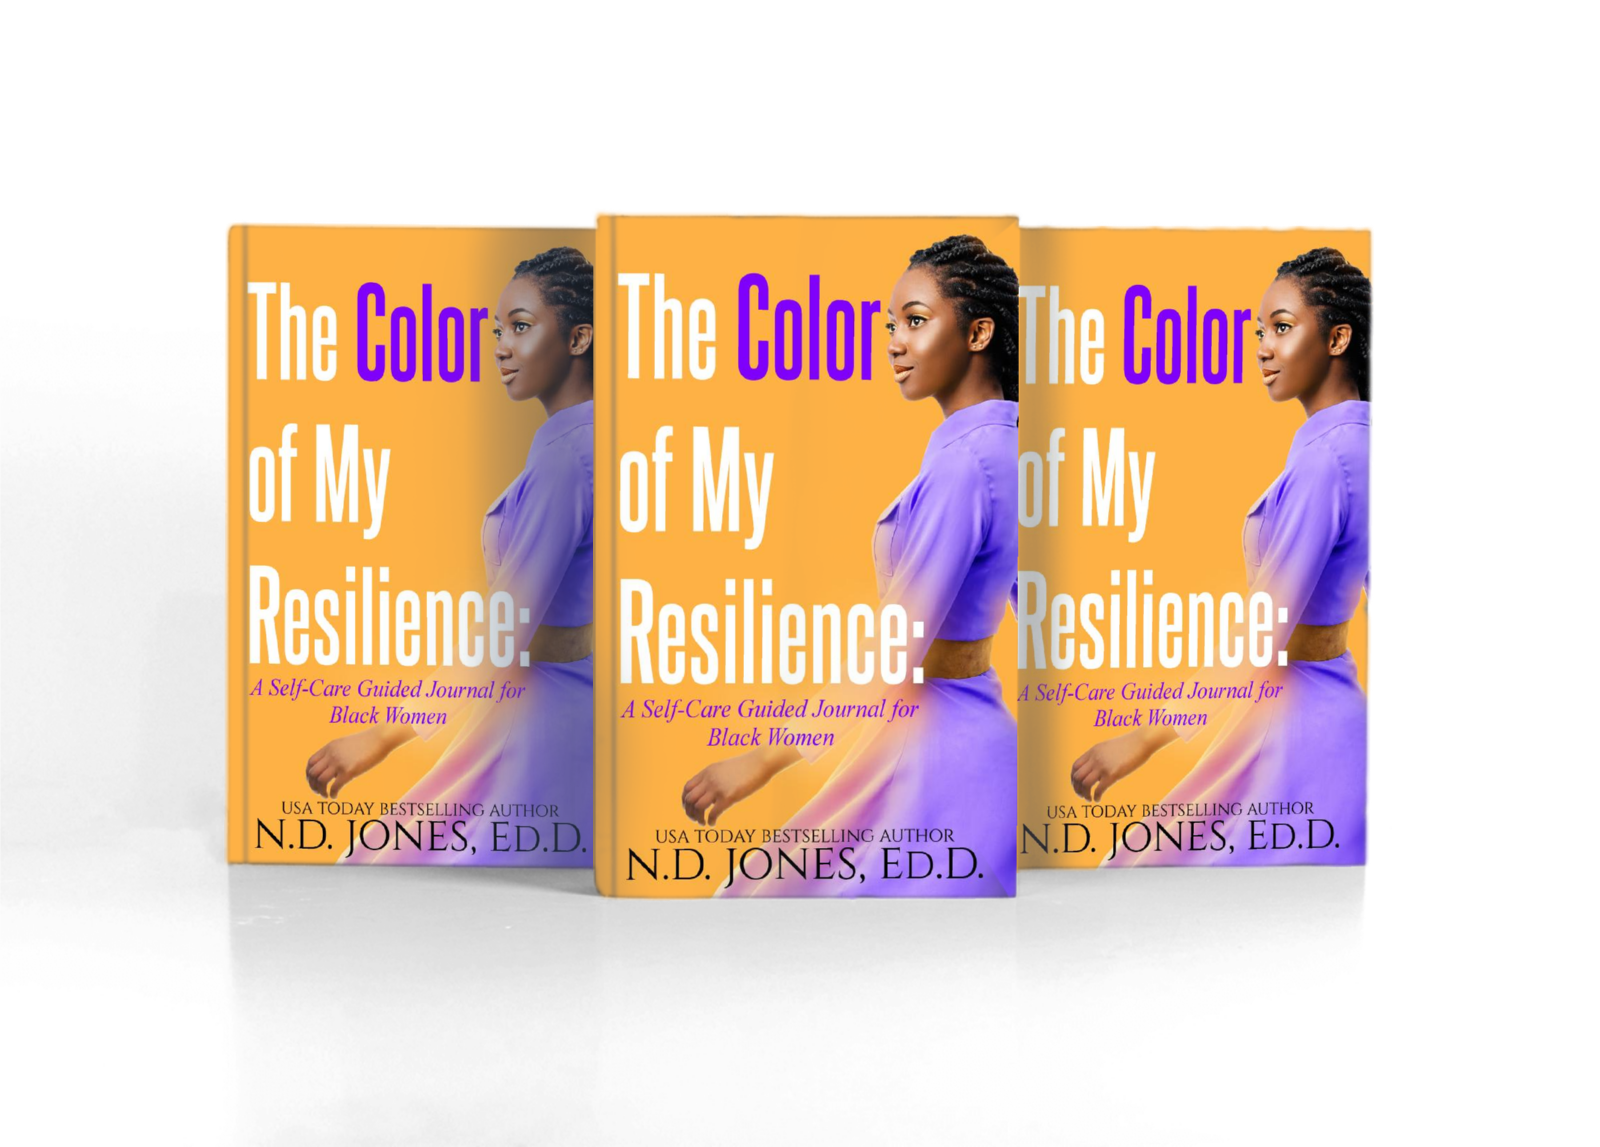 The Color of My Resilience a Guided Self-Care Journal for Black Women by ND Jones